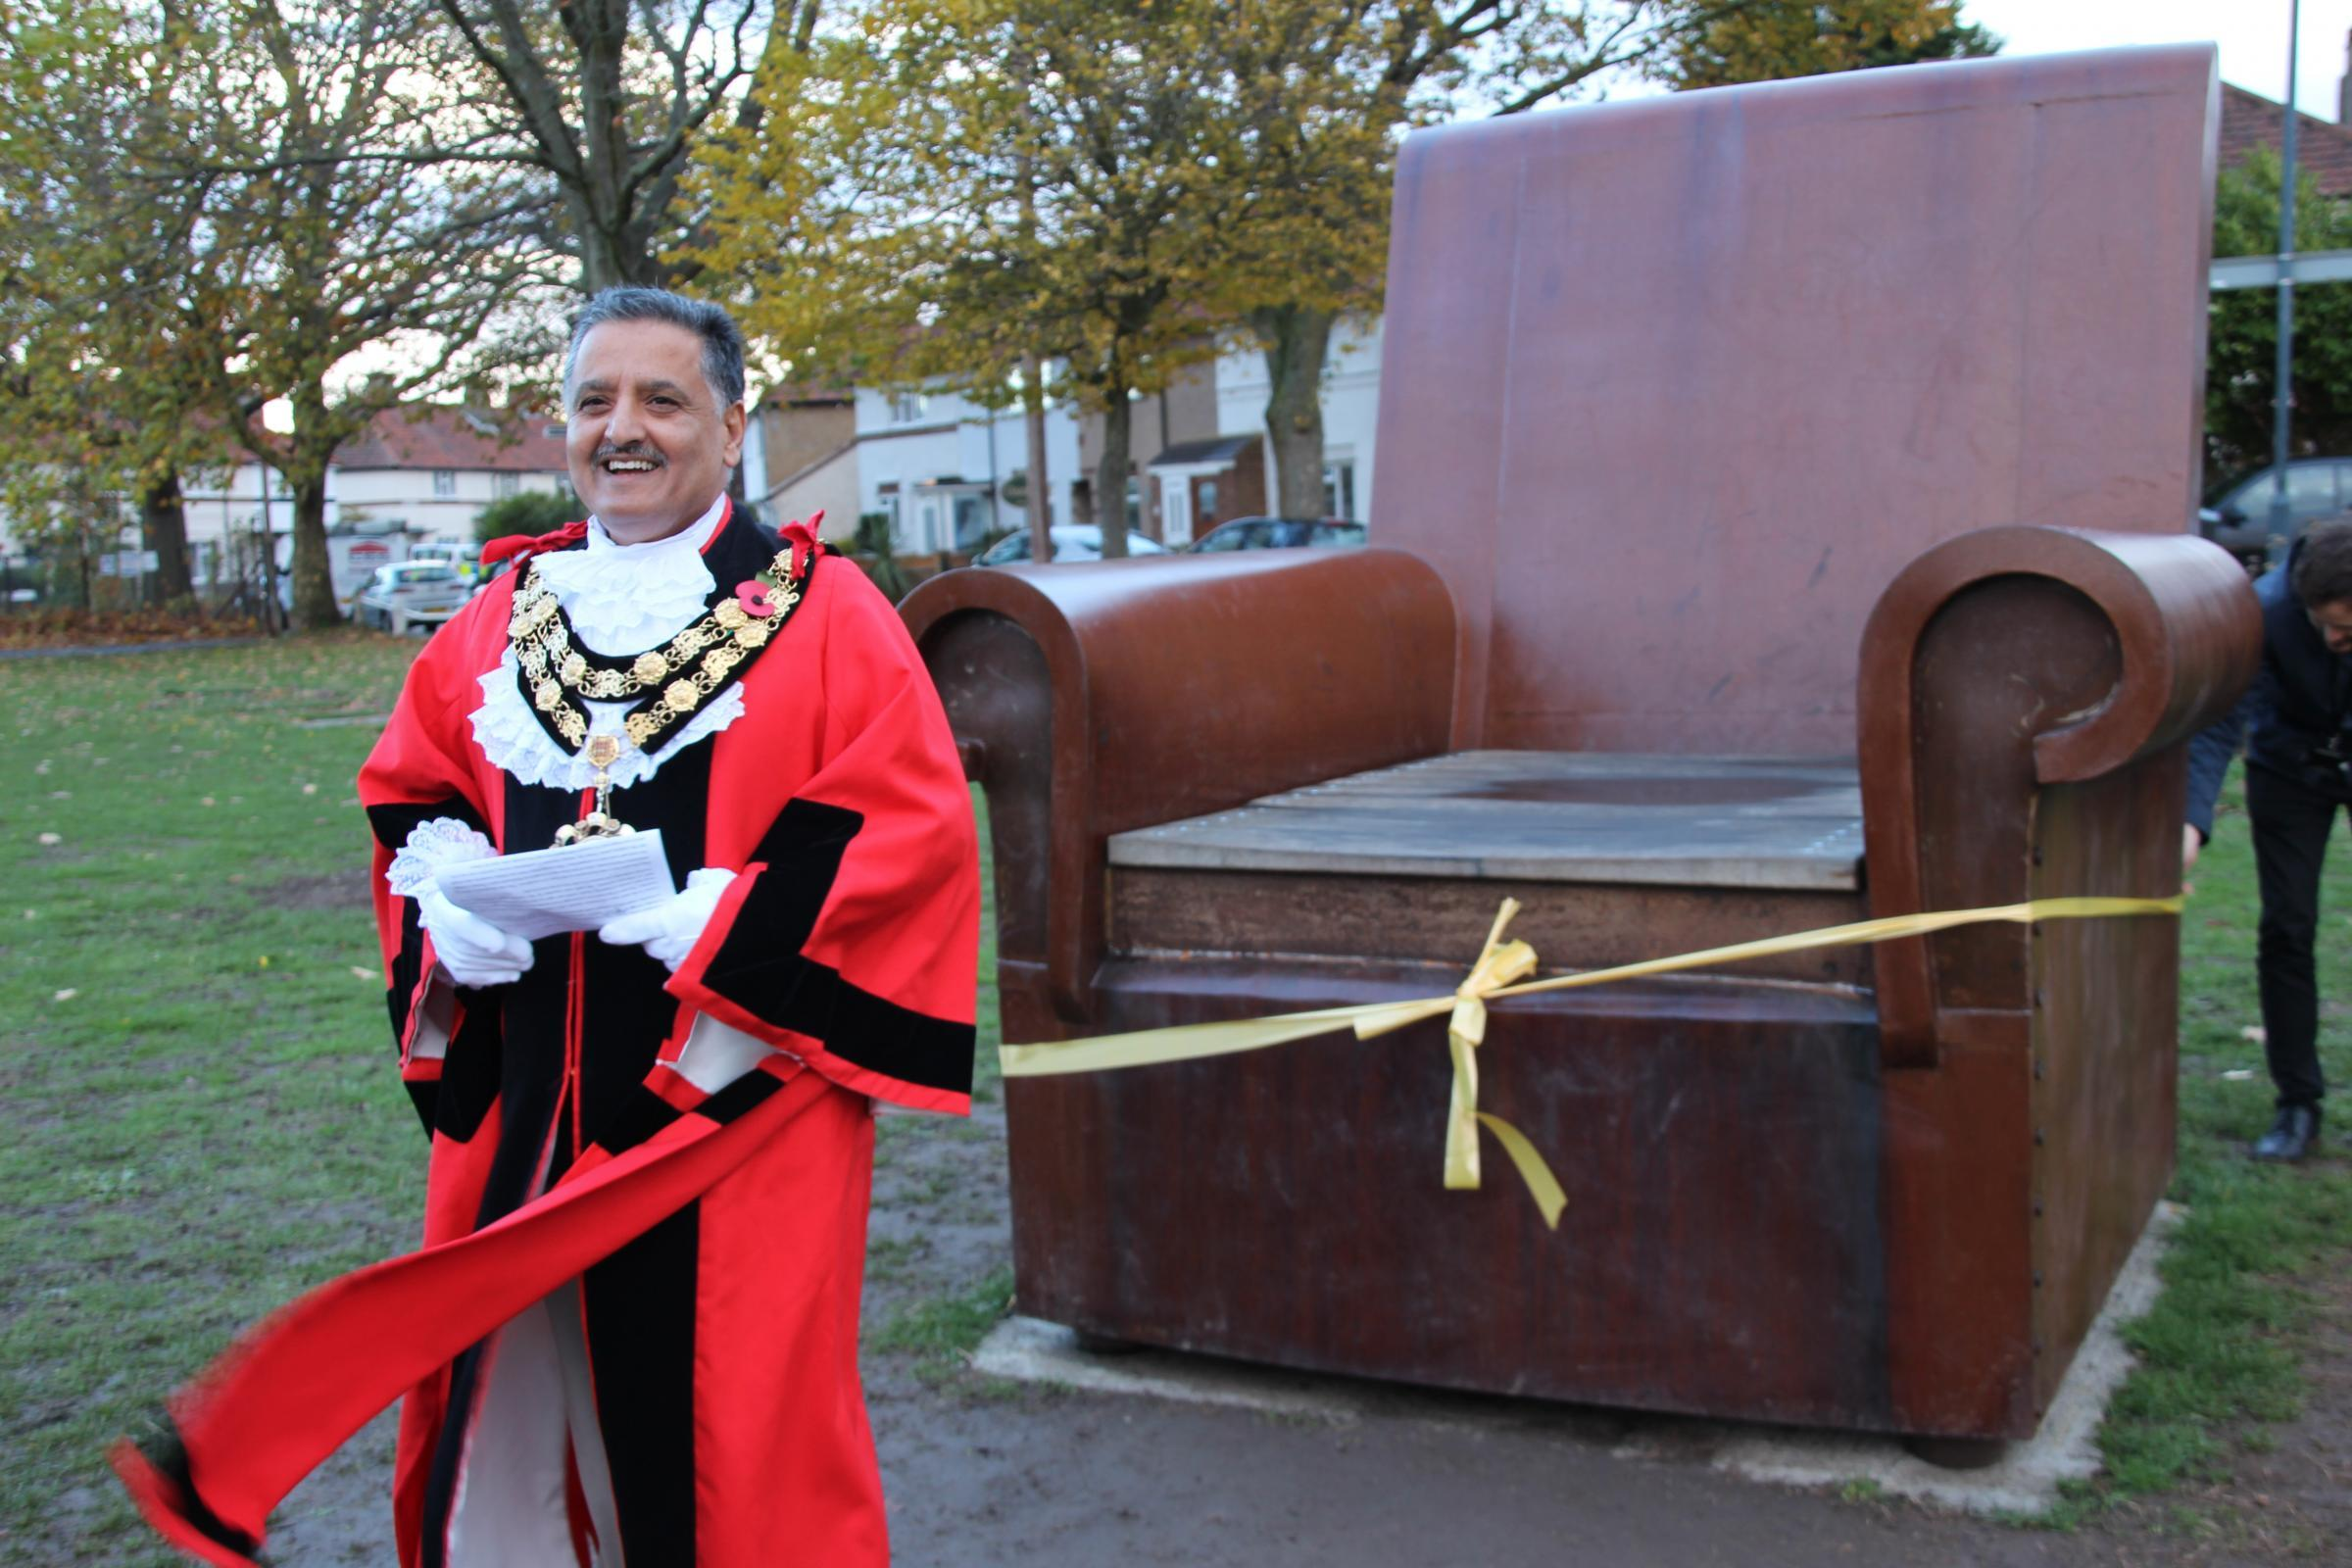 Richmond Mayor Cllr Ben Khosa was on hand to cut the ribbon for the opening of the sculpture.